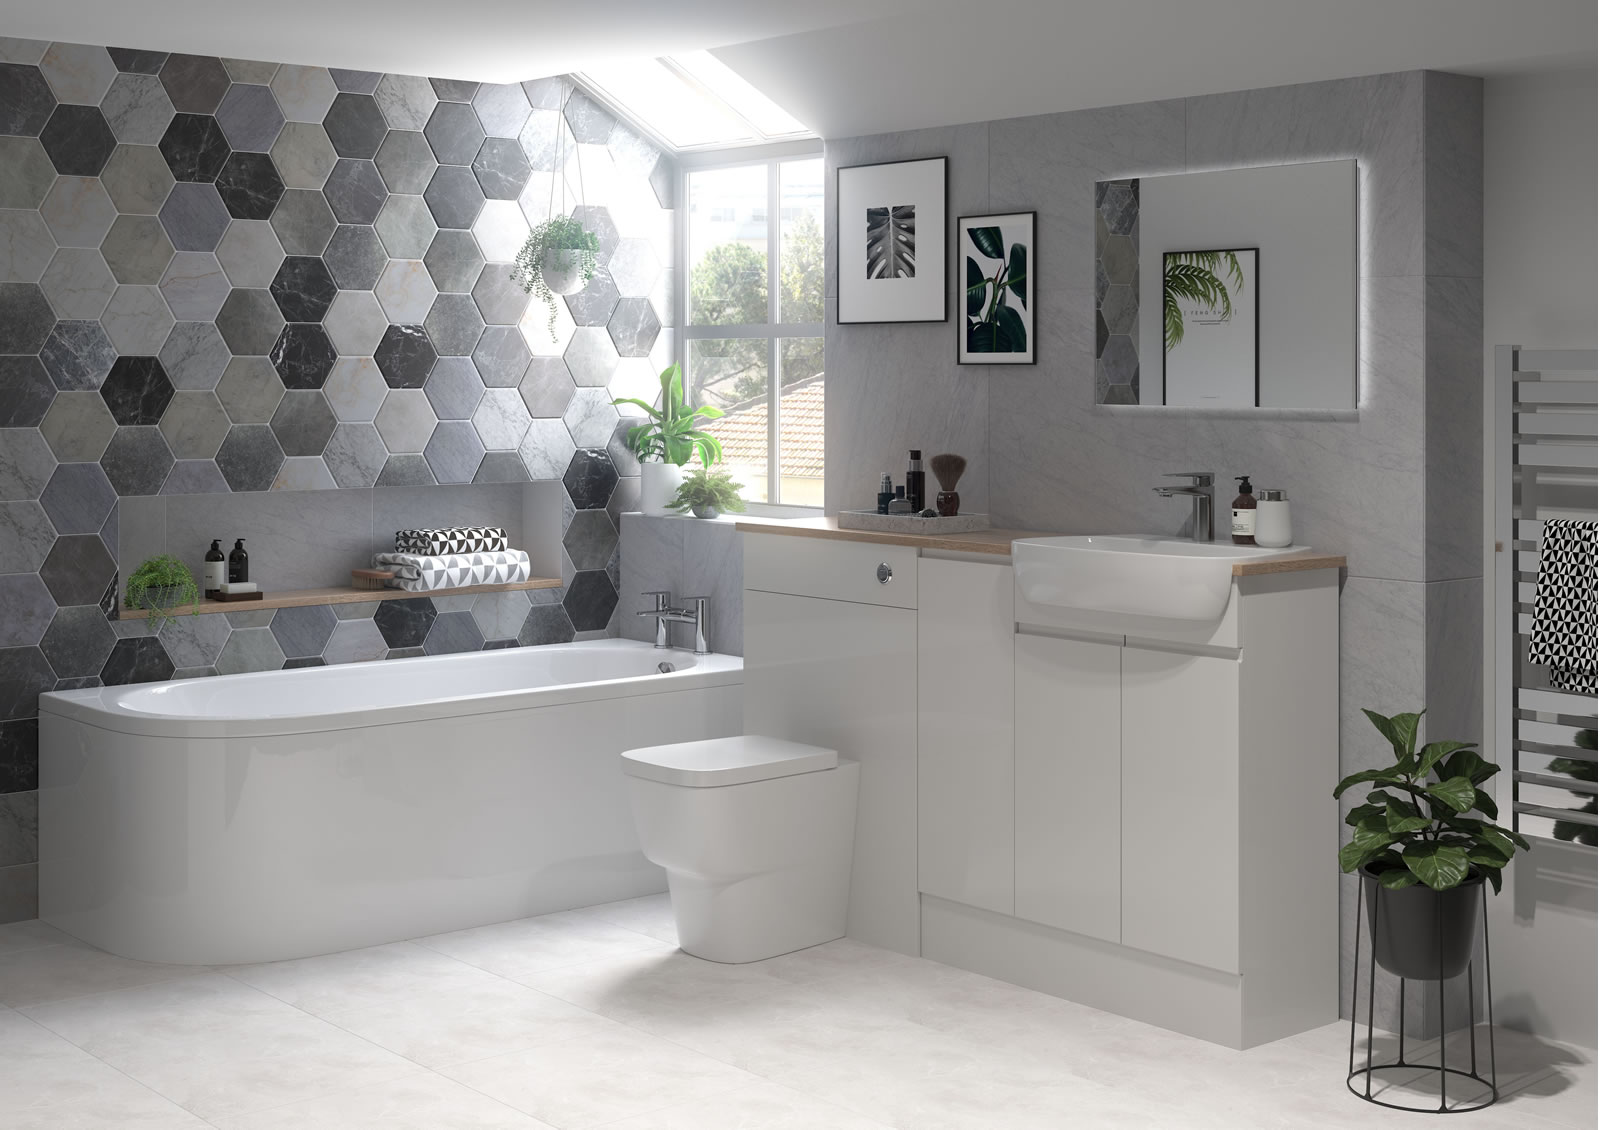 Mya Fitted Bathrooms Valesso Pearl Onyx Grey Gloss Main Photograph